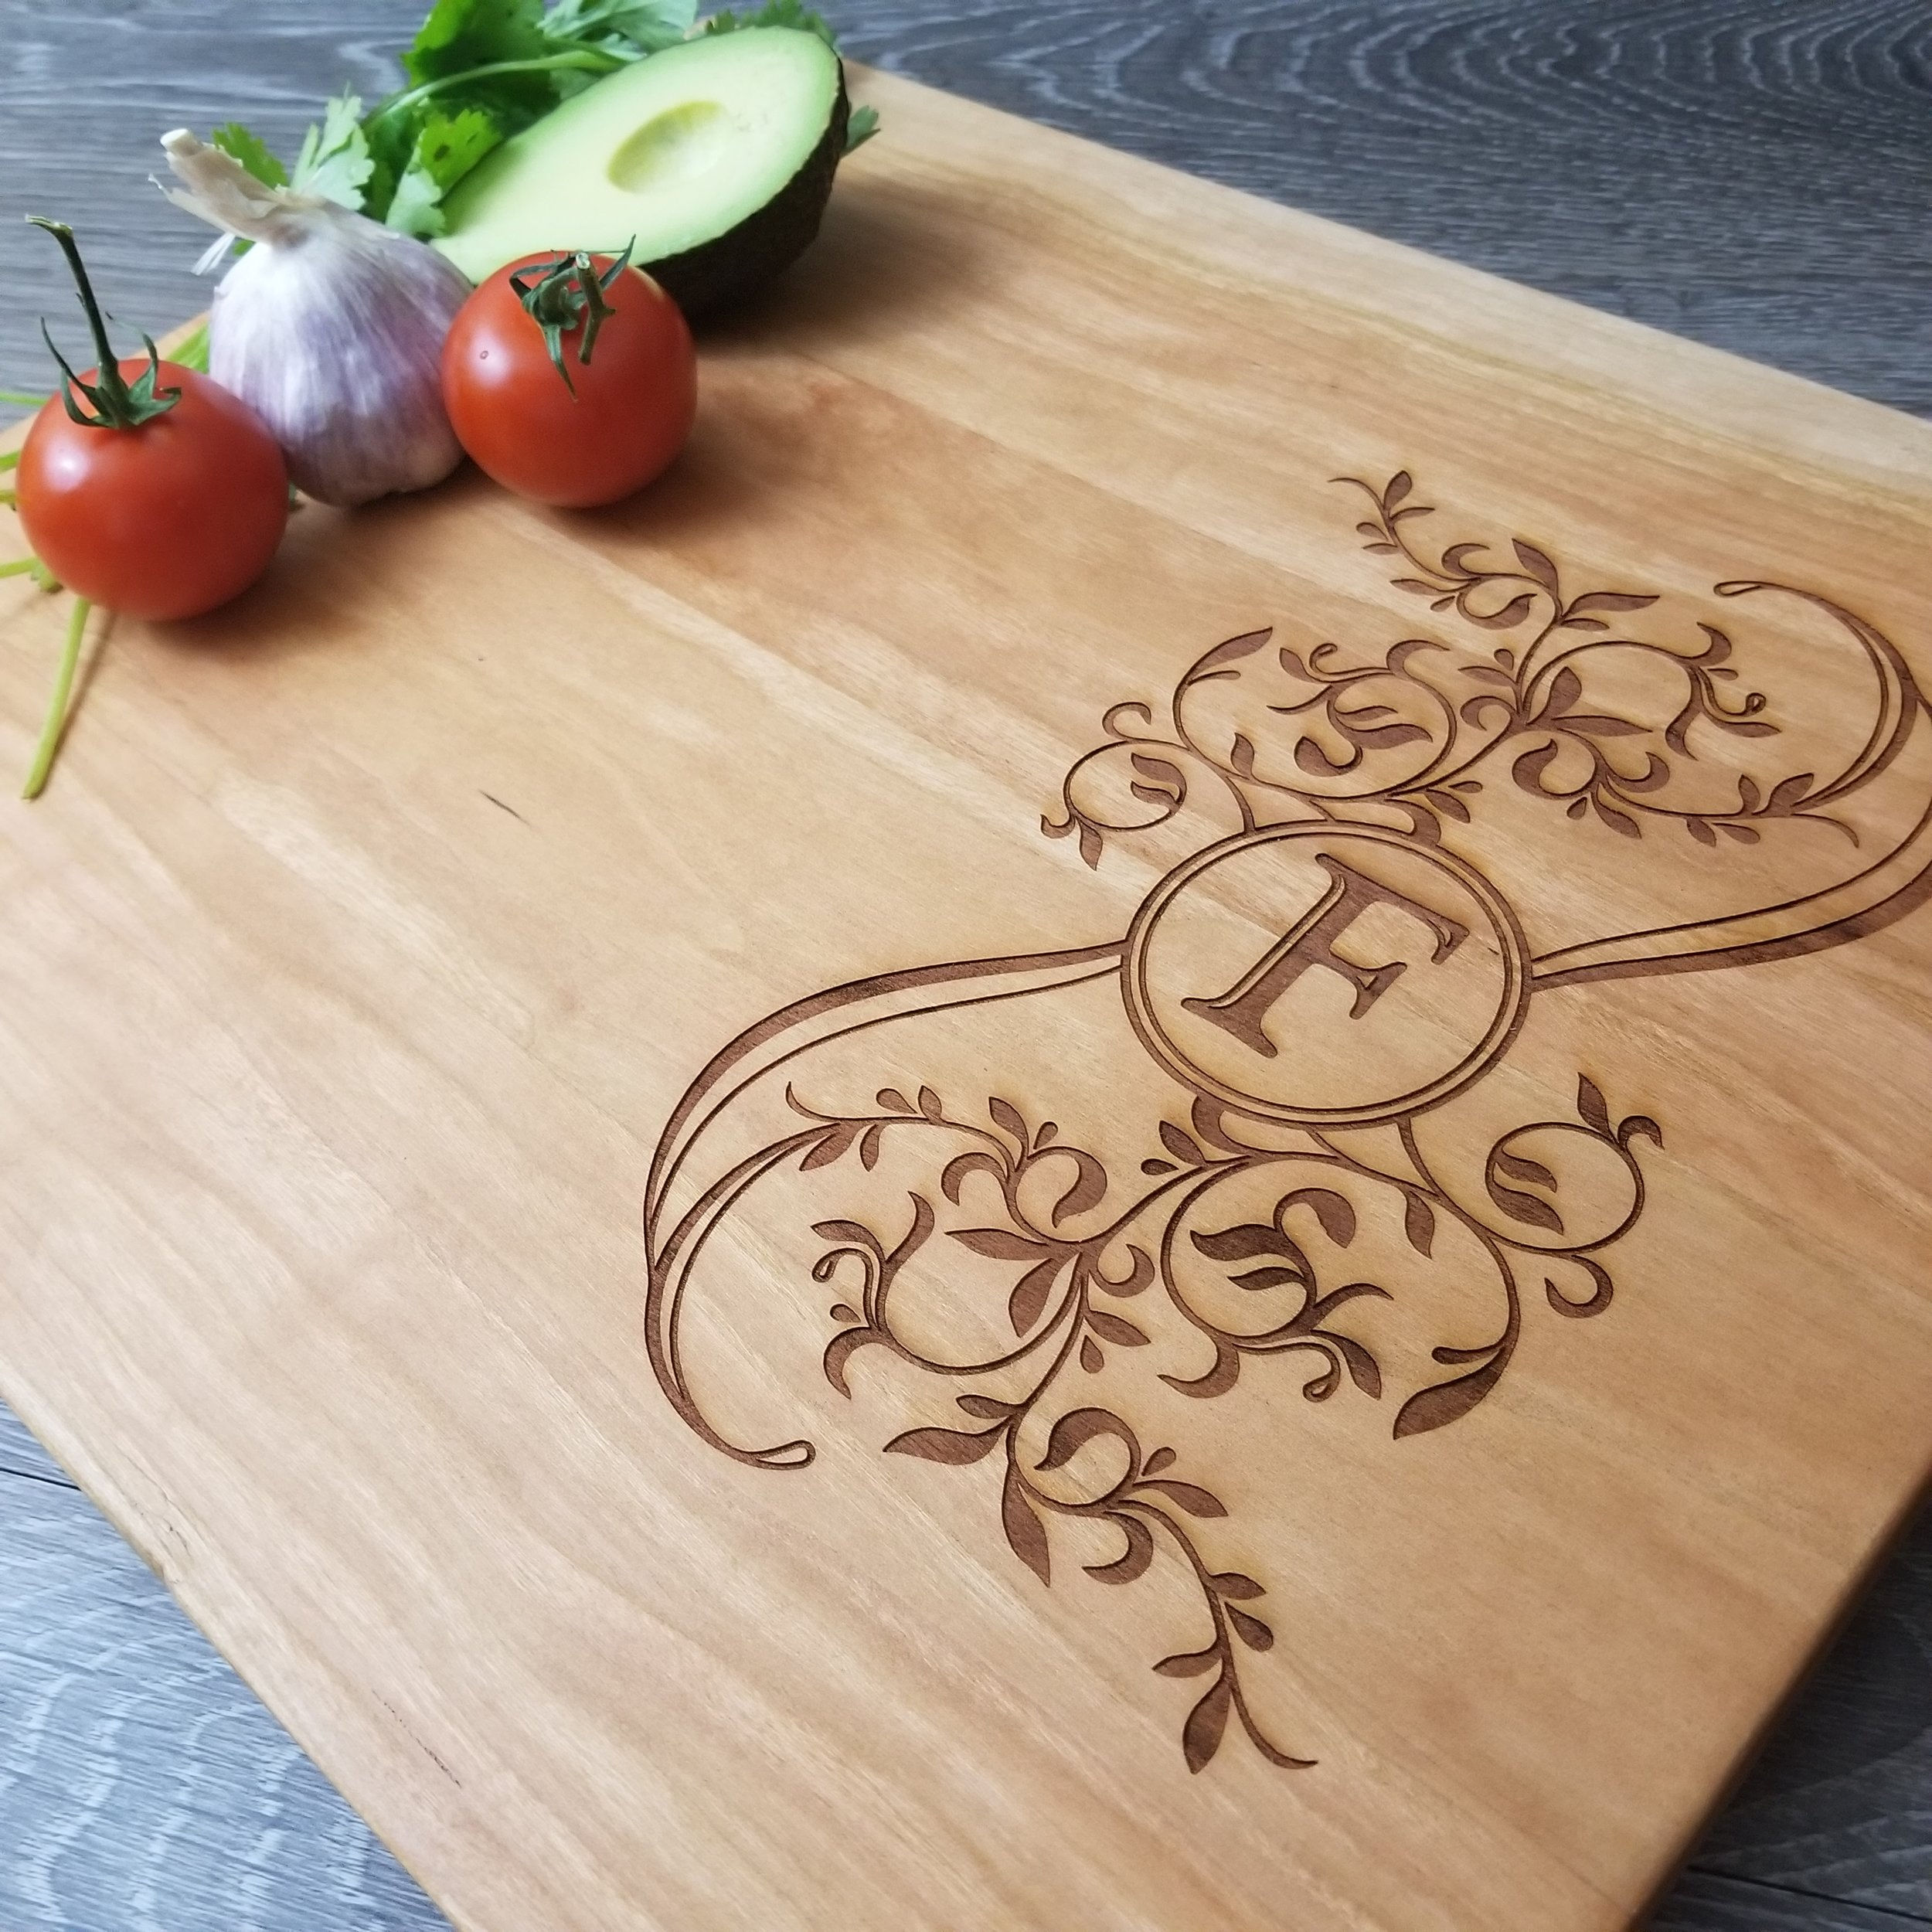 """Personalized Wood Cutting Boards - We've done the work to find the 5 best wood types for cutting boards. Now, all you have to do is choose the one you like best. Our wood cutting boards are available in 2 standard sizes: 12""""x15"""" and 6""""x15"""